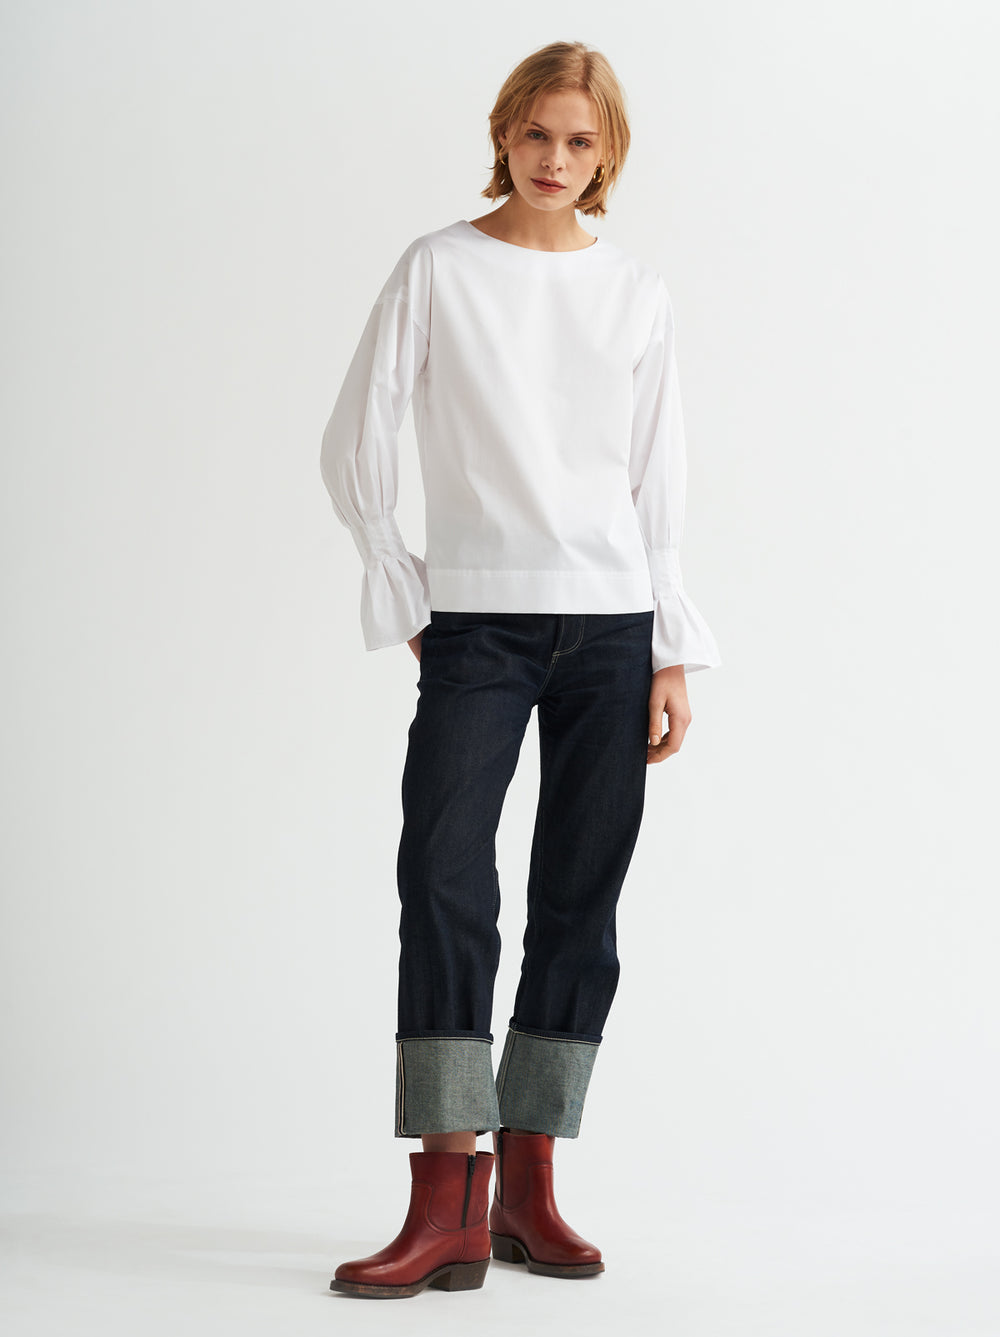 Heather White Cotton Pleated Cuff Shirt by KITRI Studio